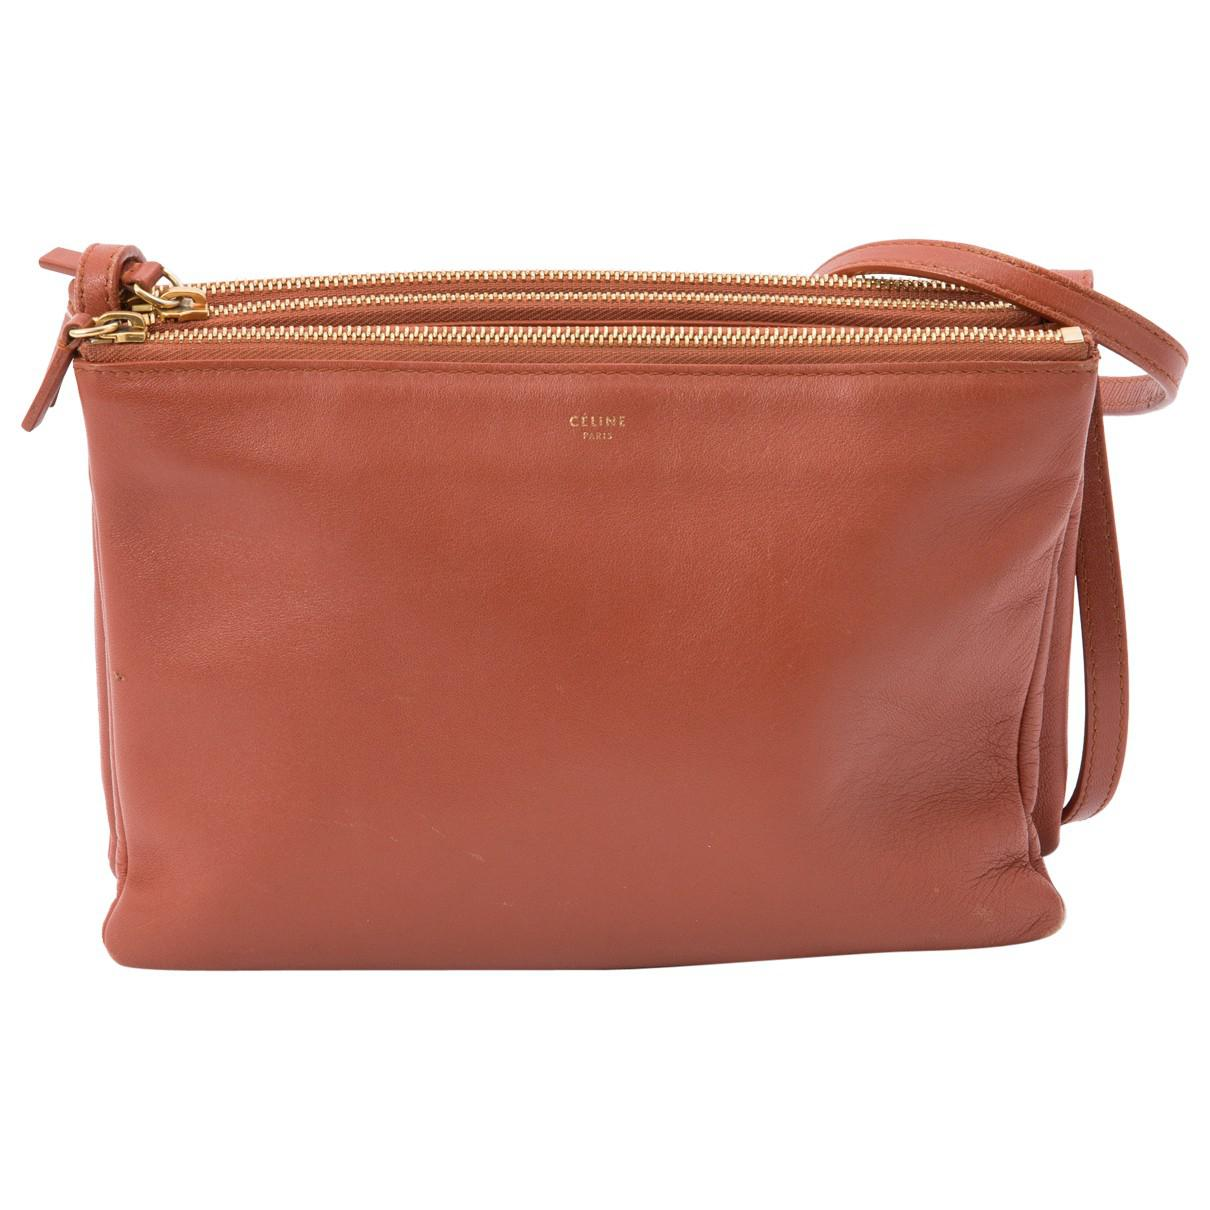 a929367296 Lyst - Céline Pre-owned Trio Leather Clutch Bag in Brown